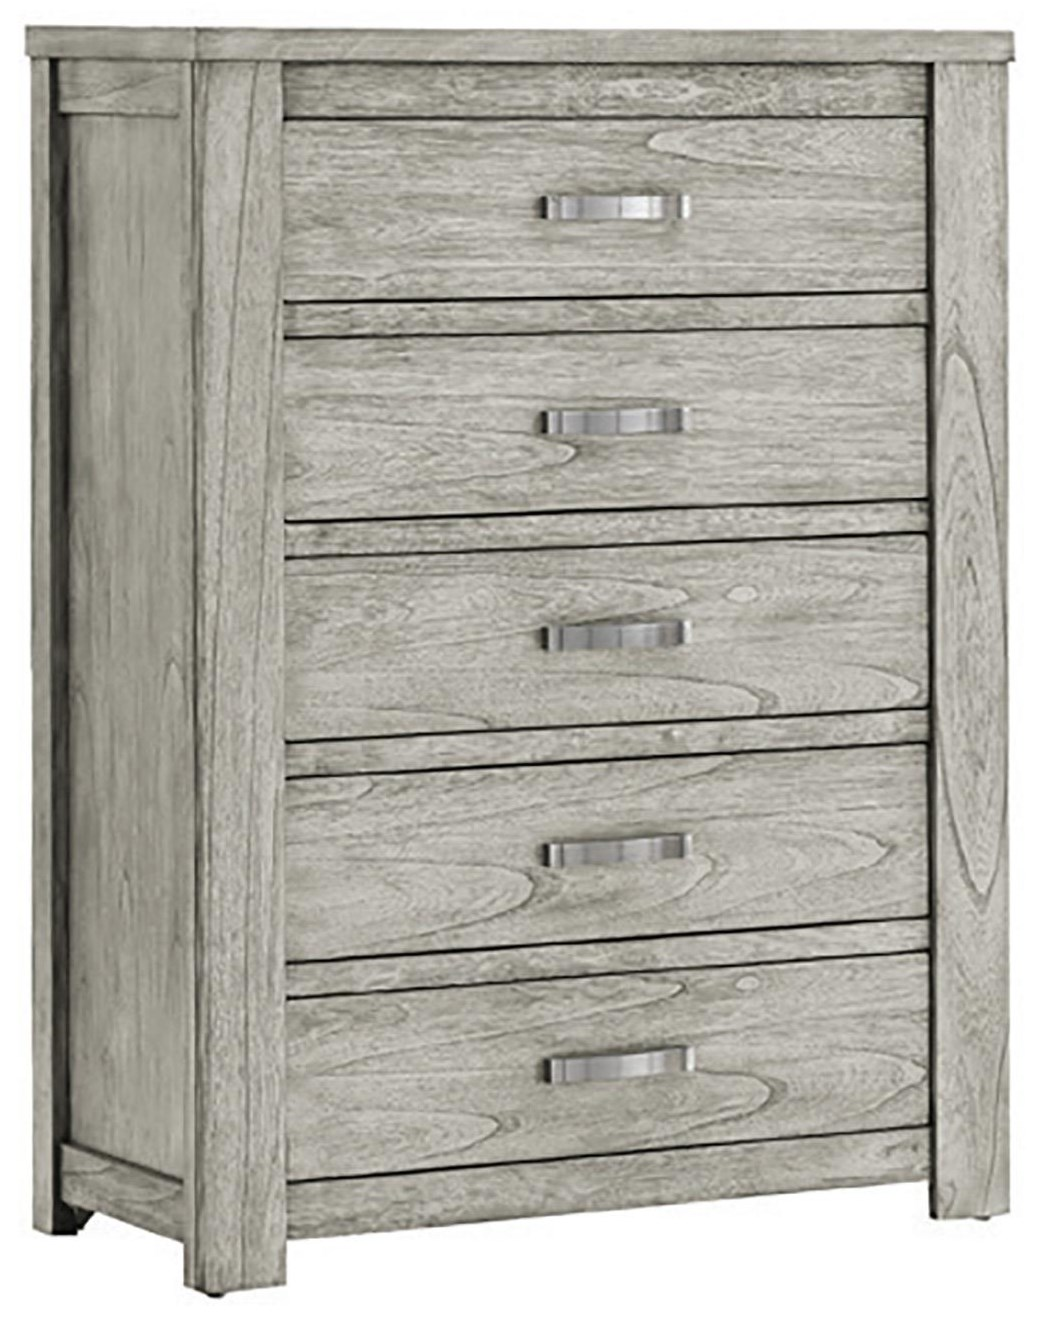 Brentwood 5 Drawer Chest by Emerald at Darvin Furniture